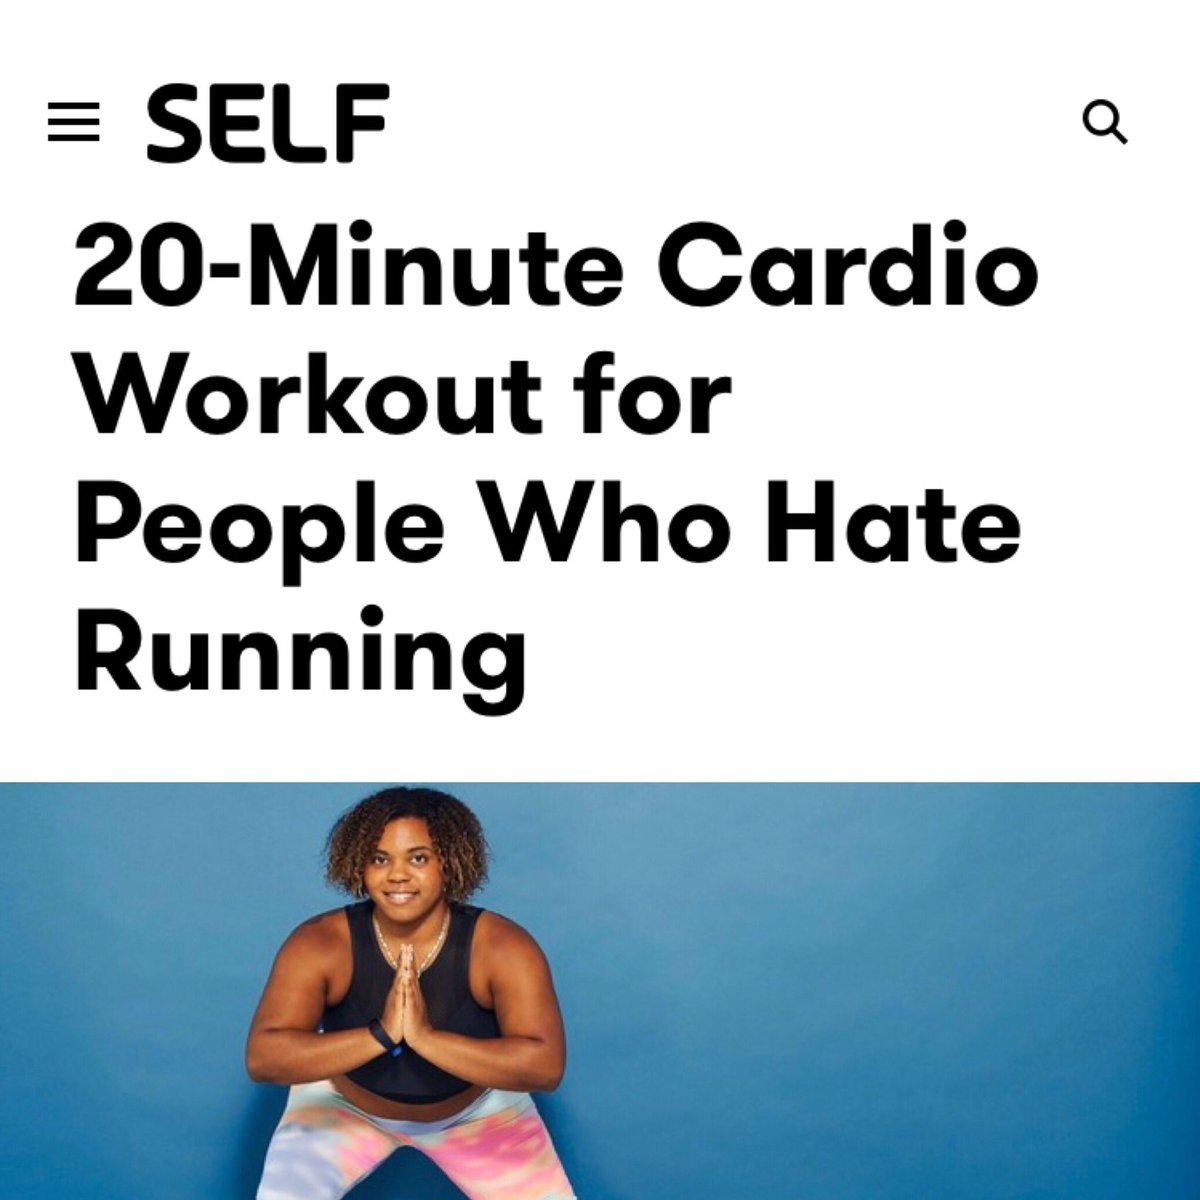 Do you hate running?  Try this 20 minute HIIT workout.  http://bit.ly/30fvoiK  @selfmagazine #hiitworkout #hiit #workout #workoutroutine #fitness #exercise #gym #gymmotivation #exerciseathome #tabataworkout #tabata #tabatatraining pic.twitter.com/Sy6lAjZUuQ